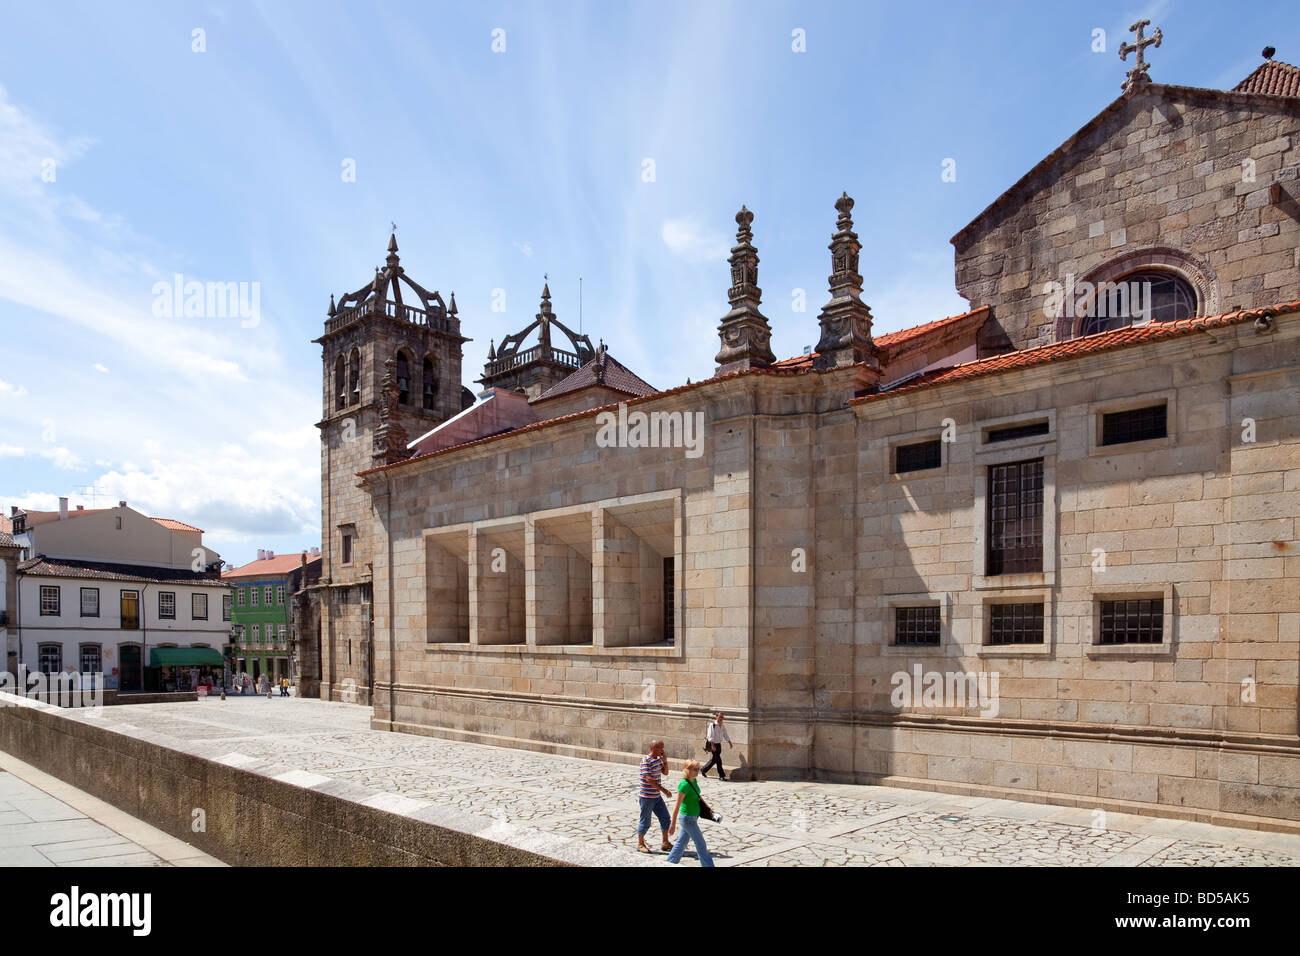 Braga's Cathedral, the most ancient of all cathedrals in Portugal and a main worship place. Stock Photo